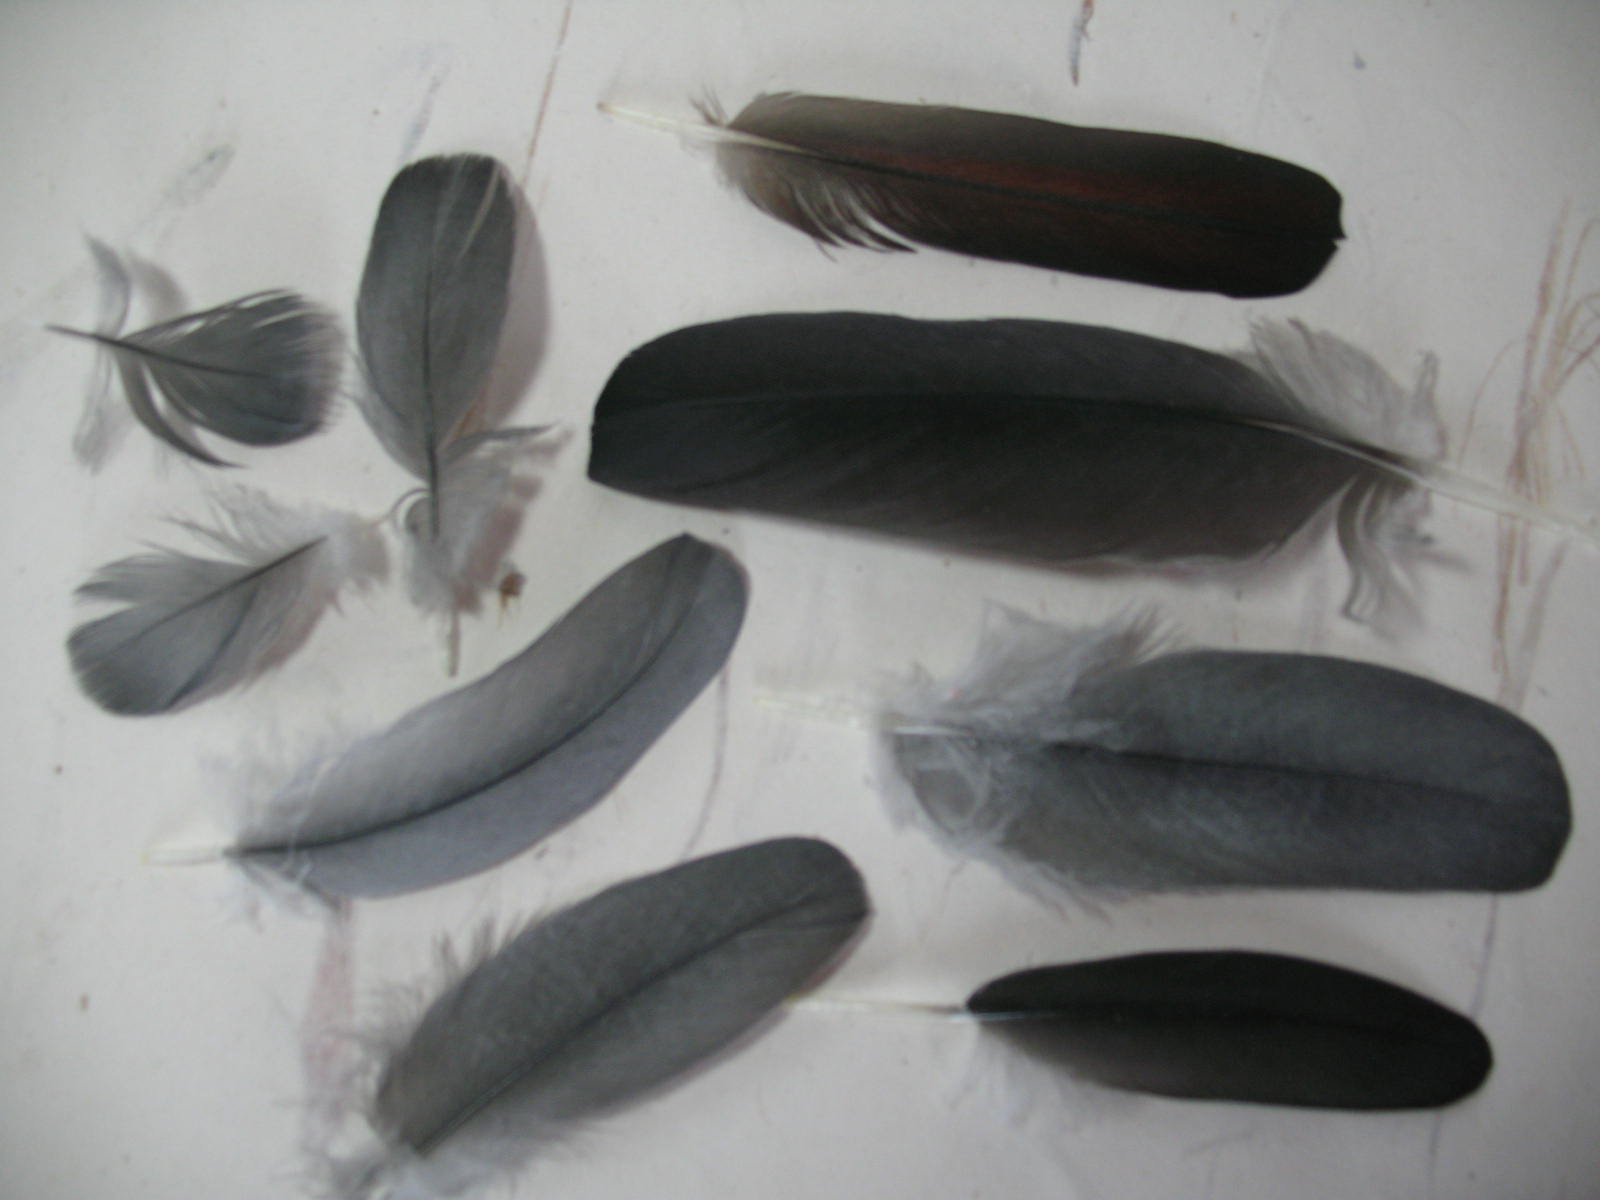 How to use a feather sexually